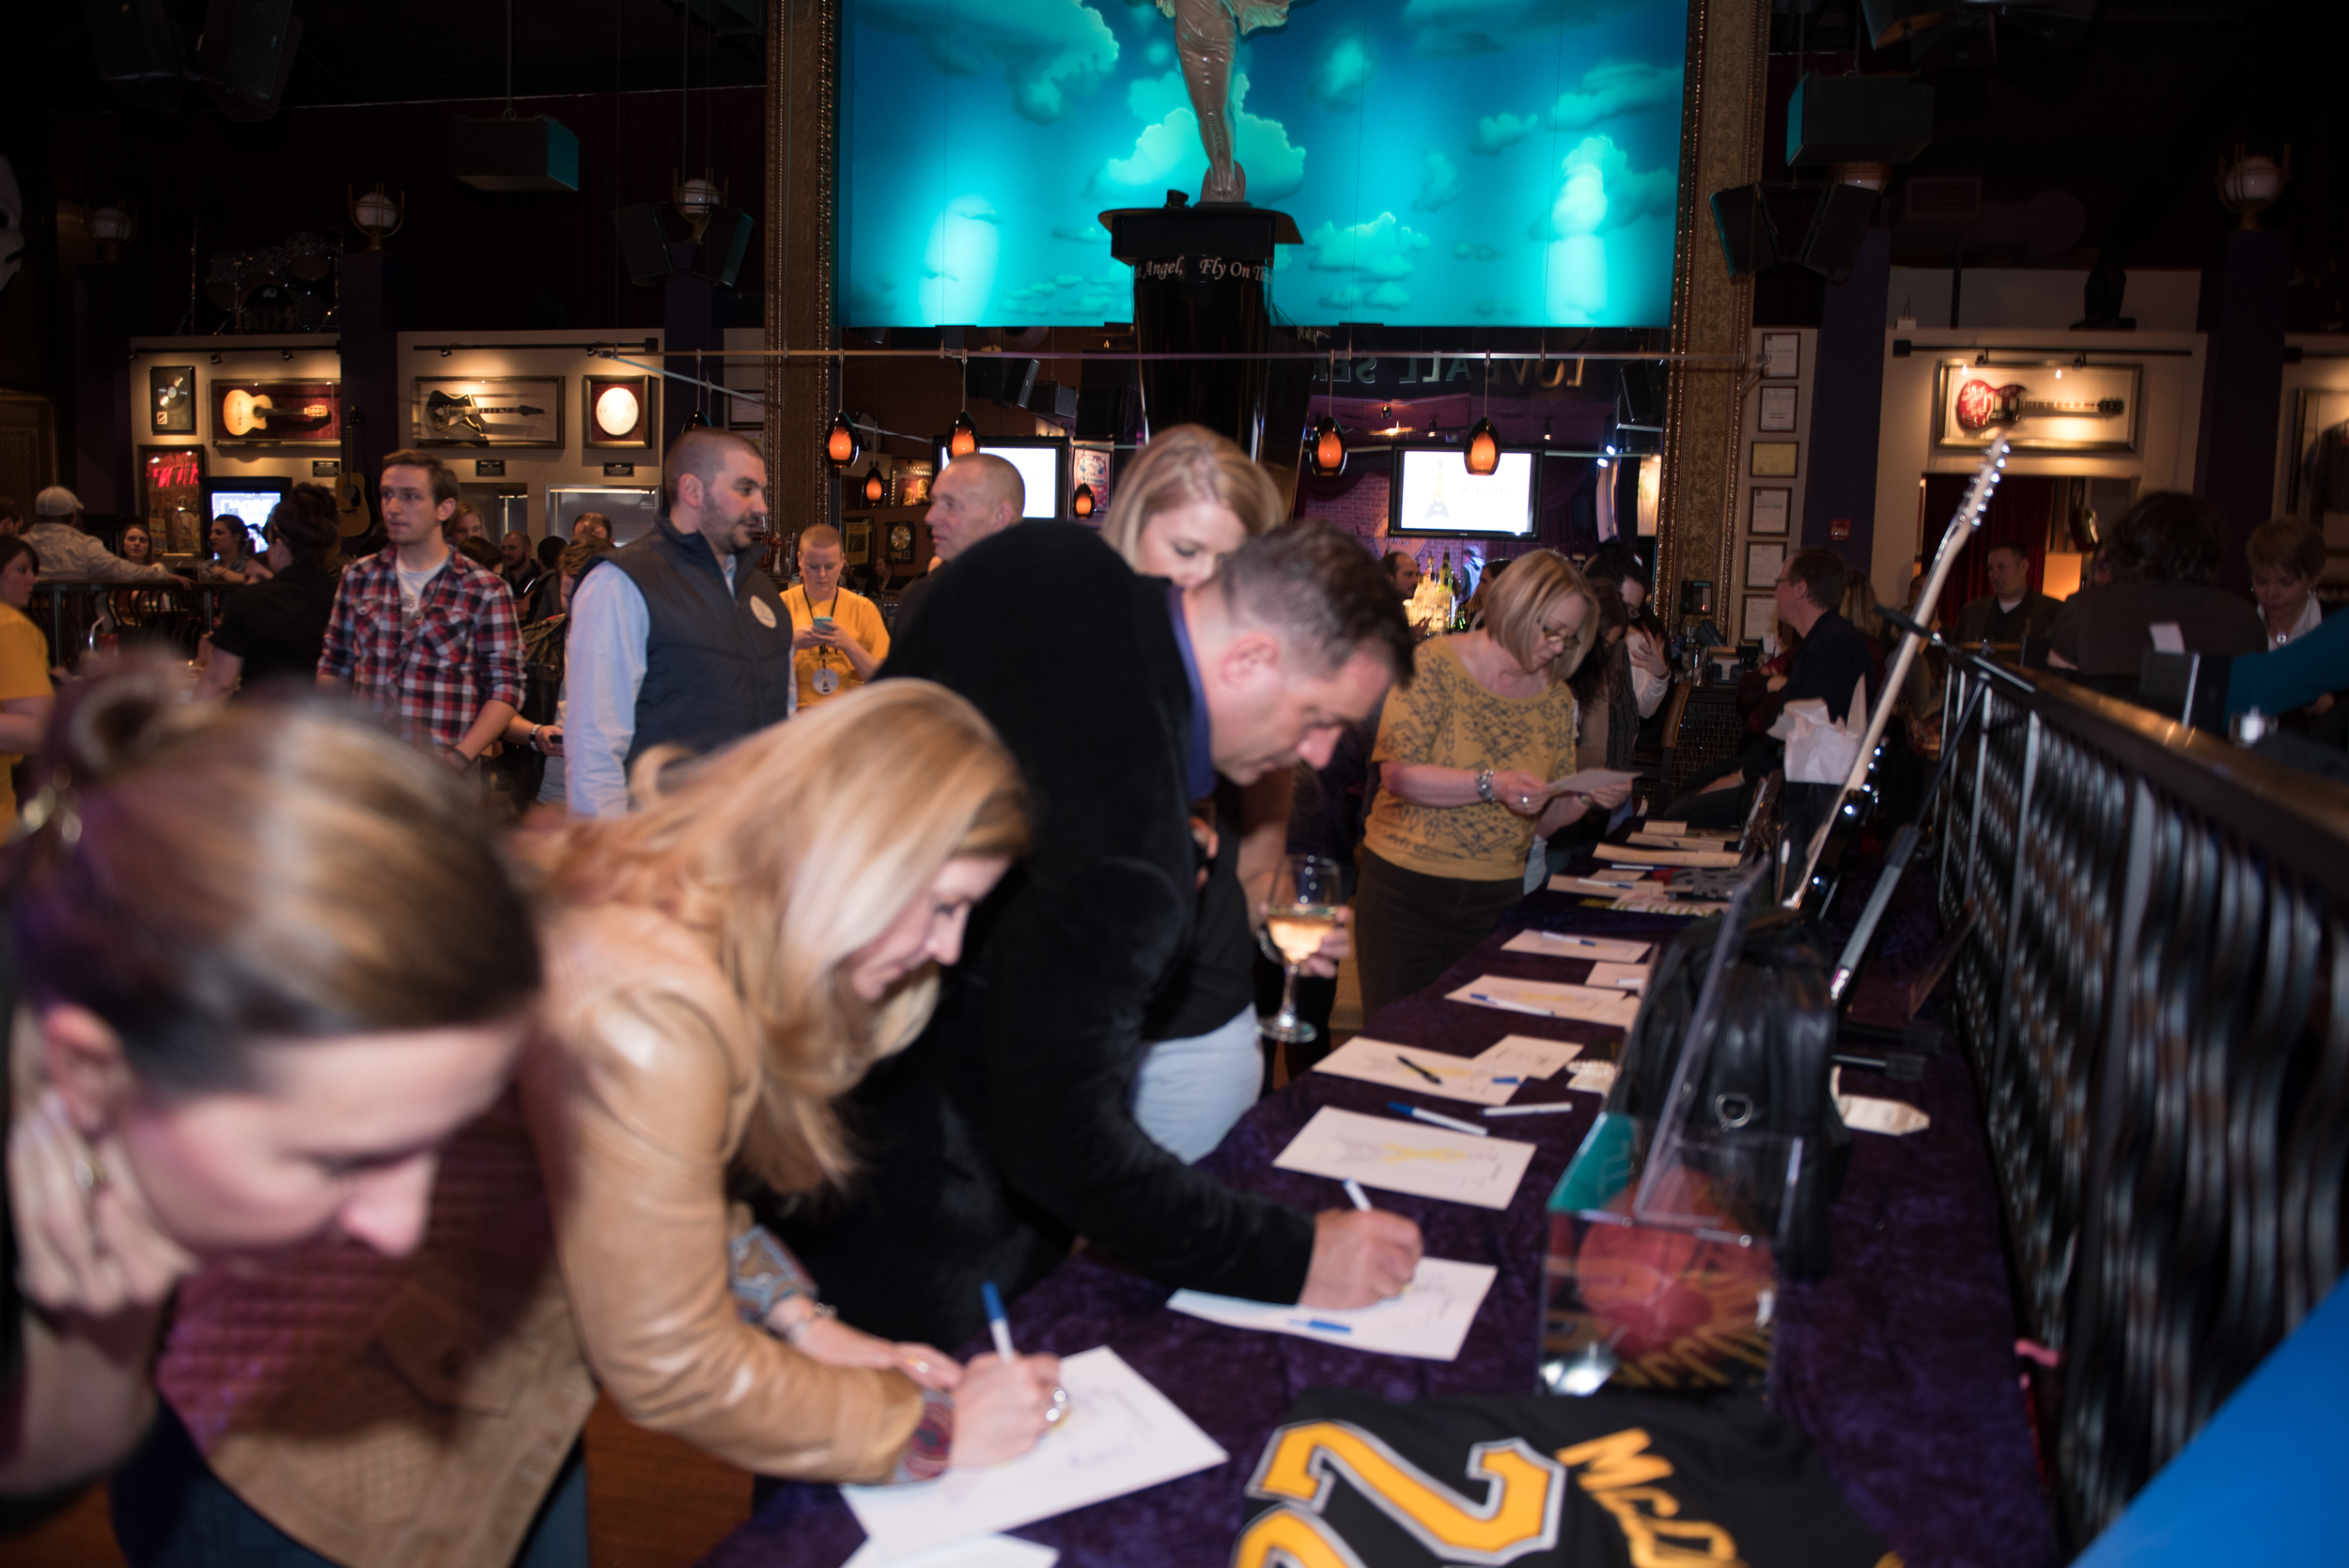 Cure Rock - Hard Rock Cafe - 3.26.15 - 117.jpg